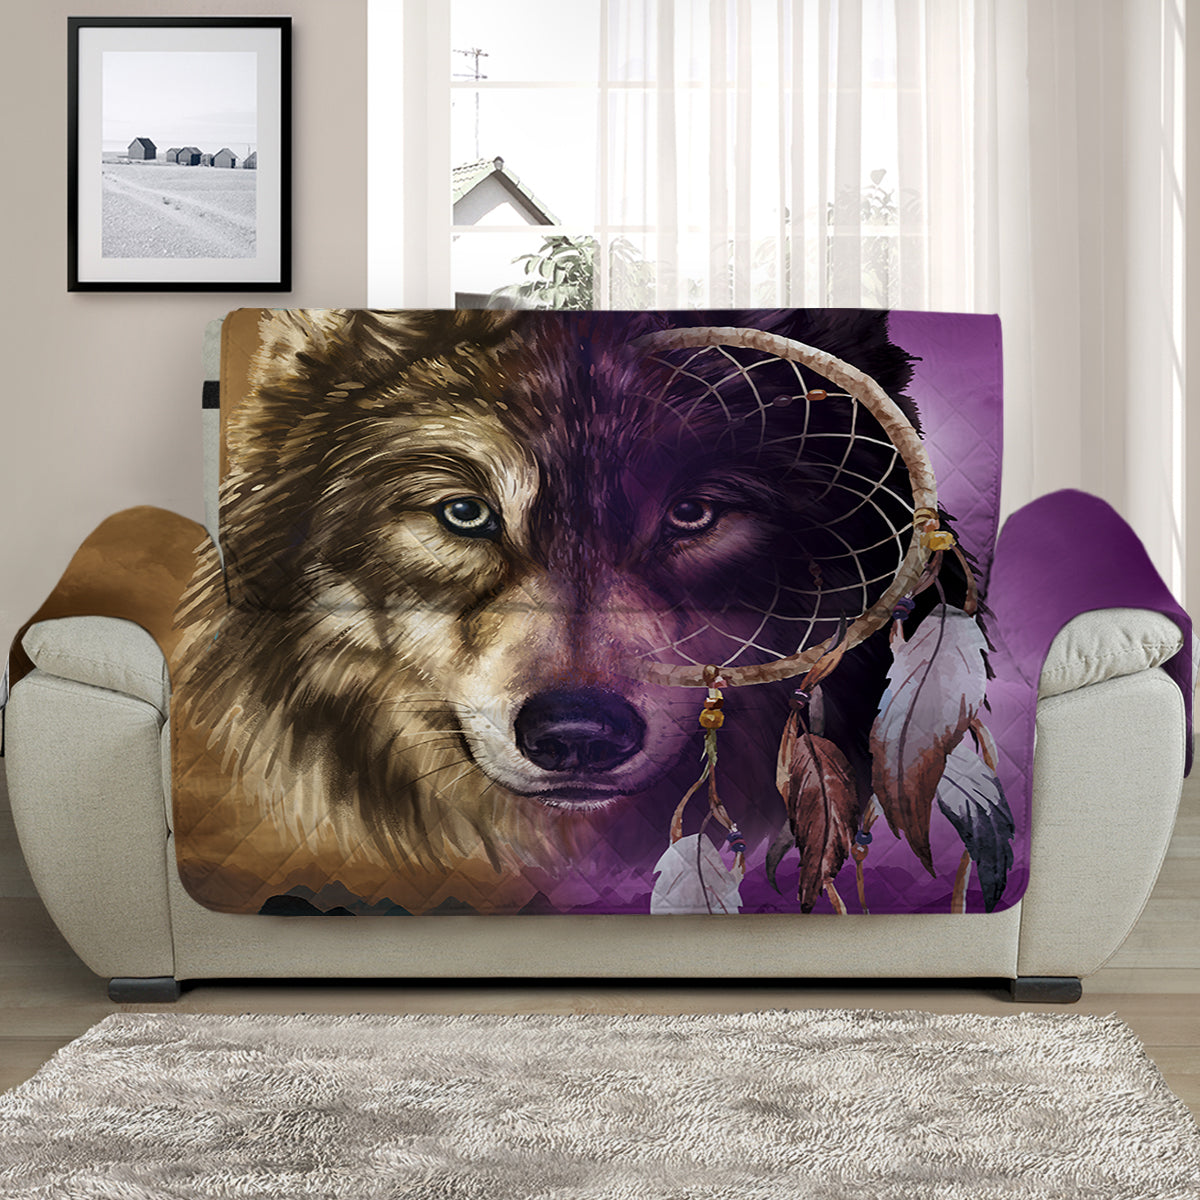 Wolf Dreamcatcher Face Quilted Cover for Sofa, Chairs, Futons & Recliners